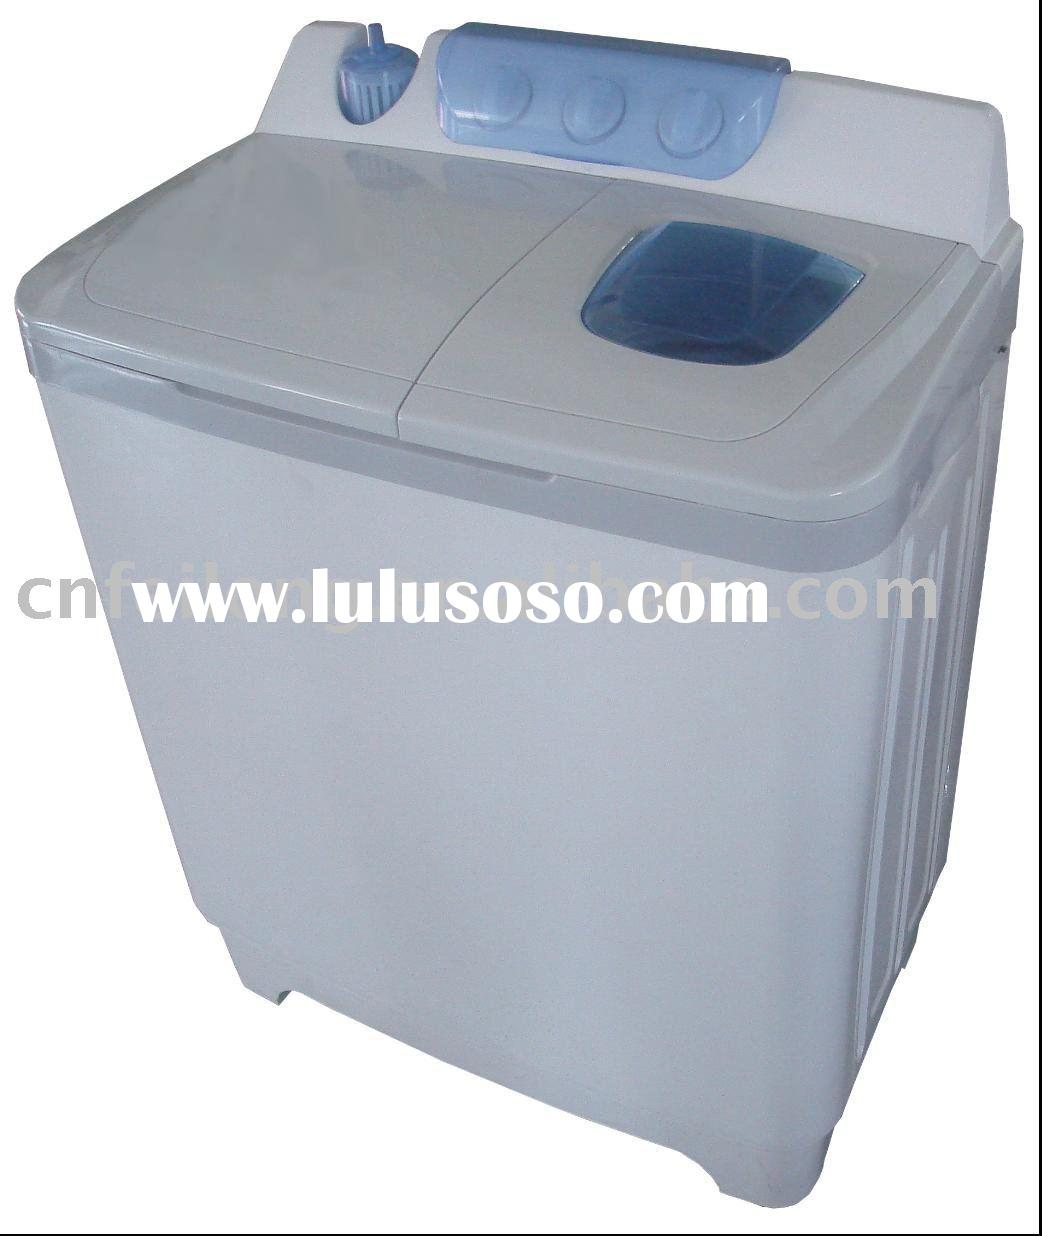 New Dsign--9.0kg Twin-tub washing machines